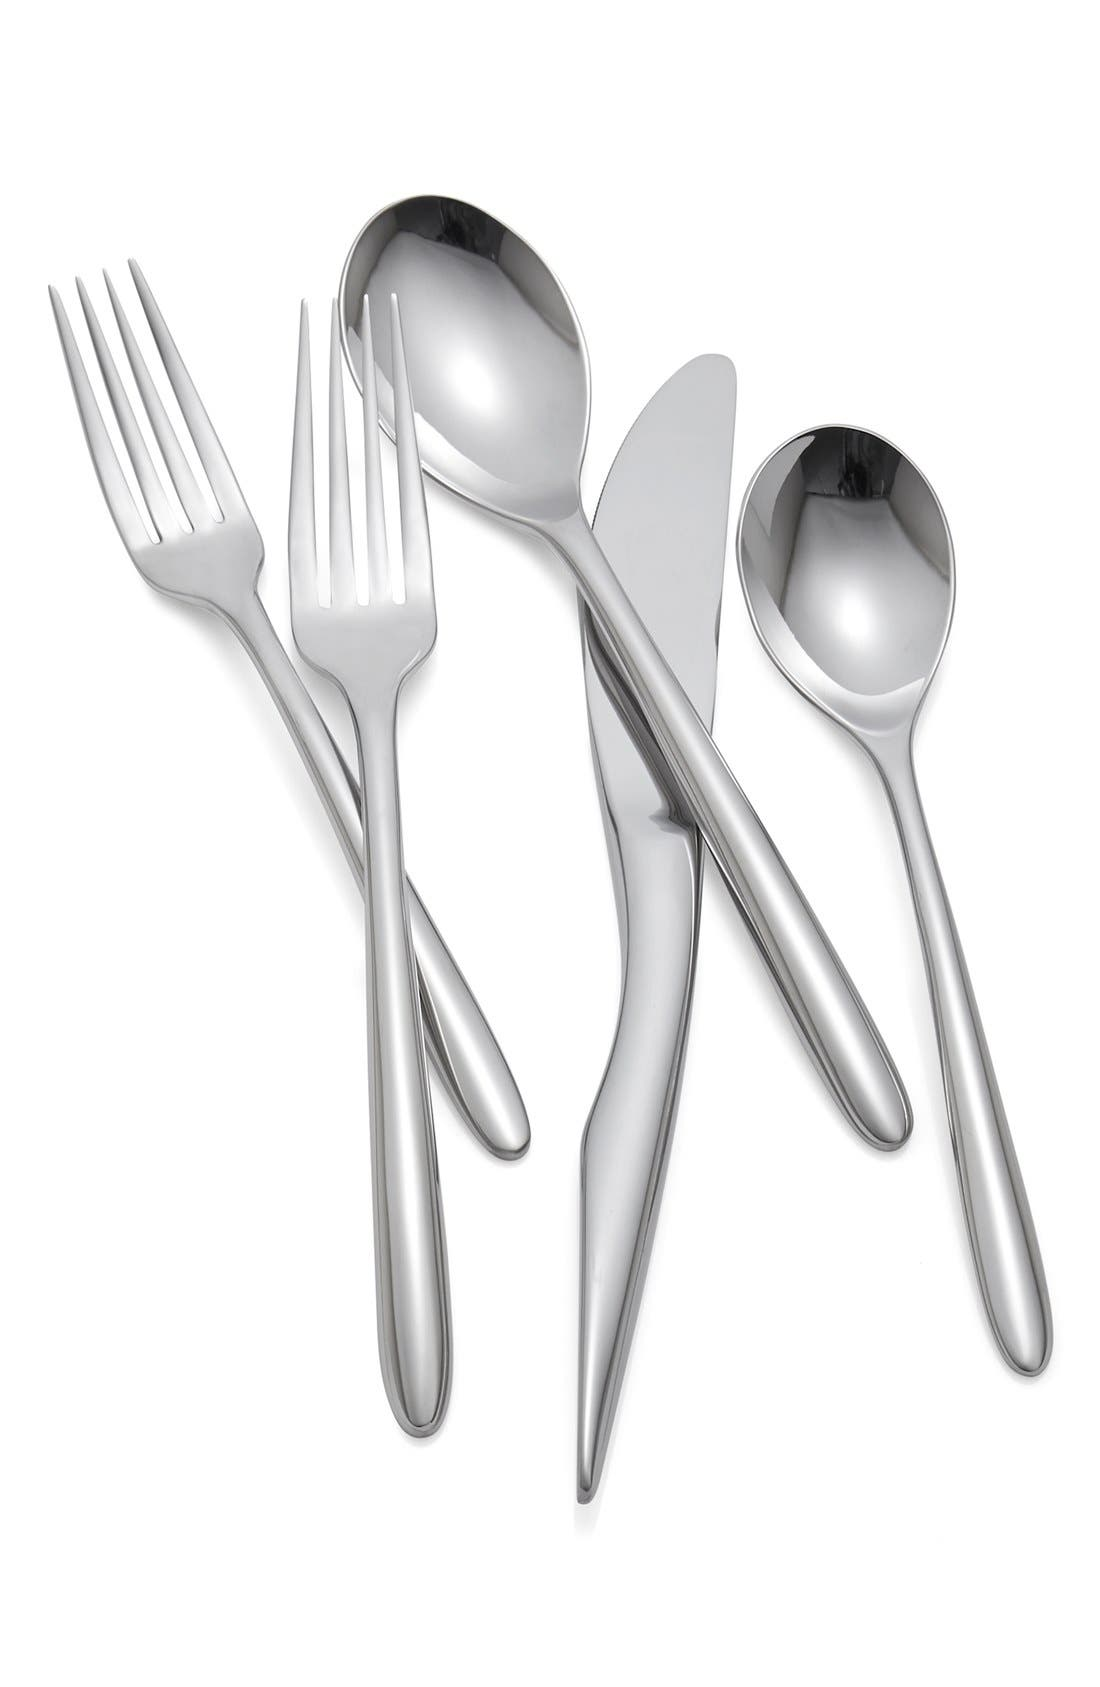 Main Image - Nambé 'Dune' 5-Piece Stainless Steel Table Setting